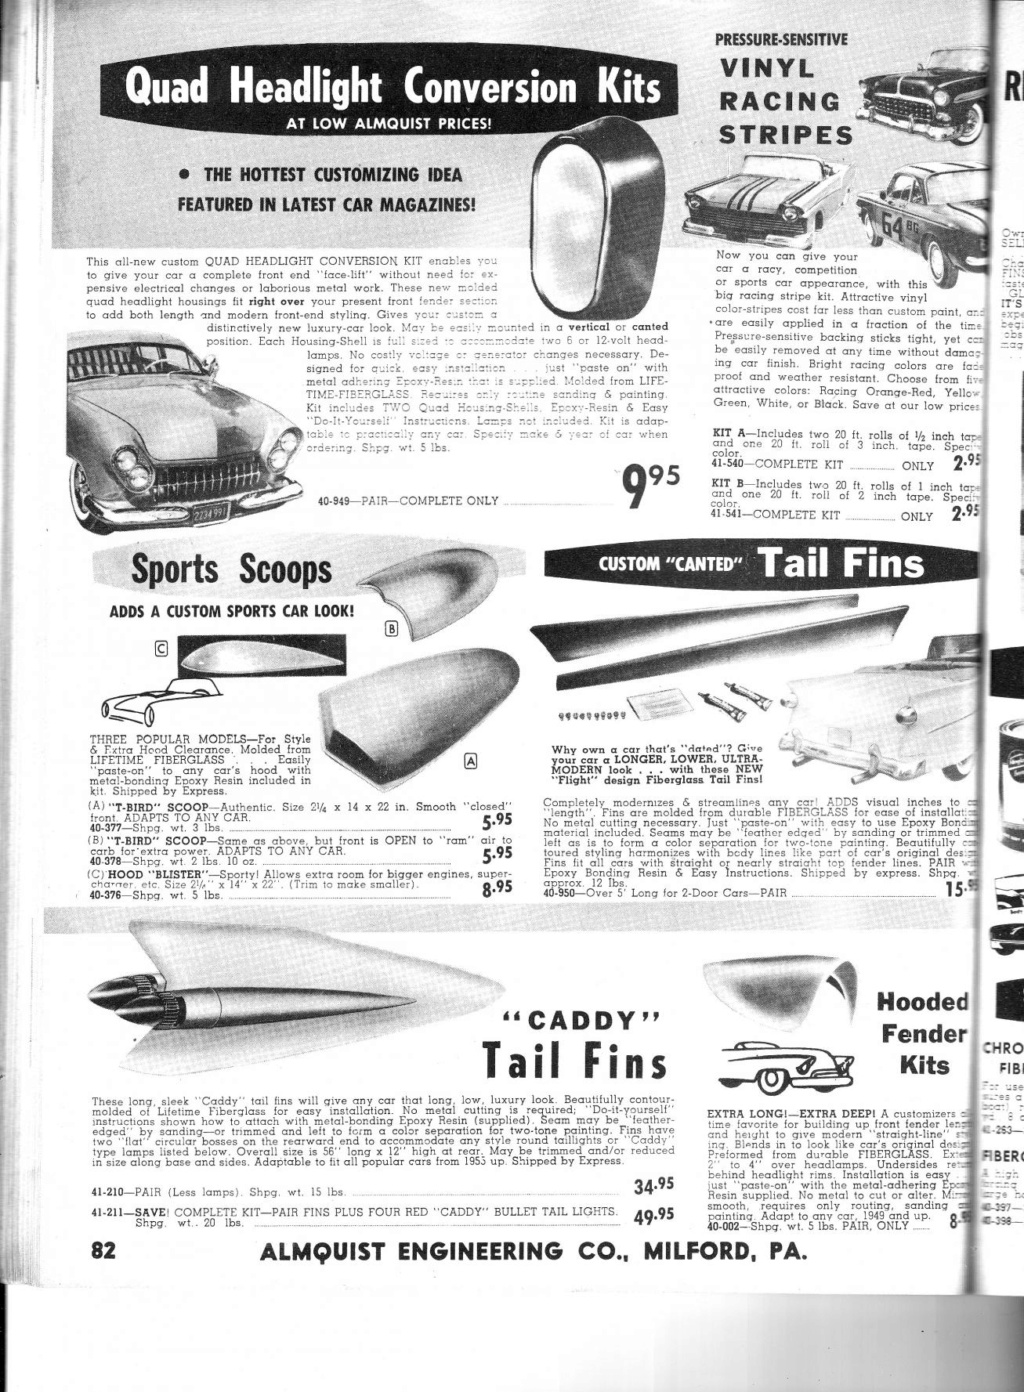 Almquist catalog, Speed, Mileage, Customizing, Performance - World's largest supplier of hi-performance equipement -  1963 Img_0011